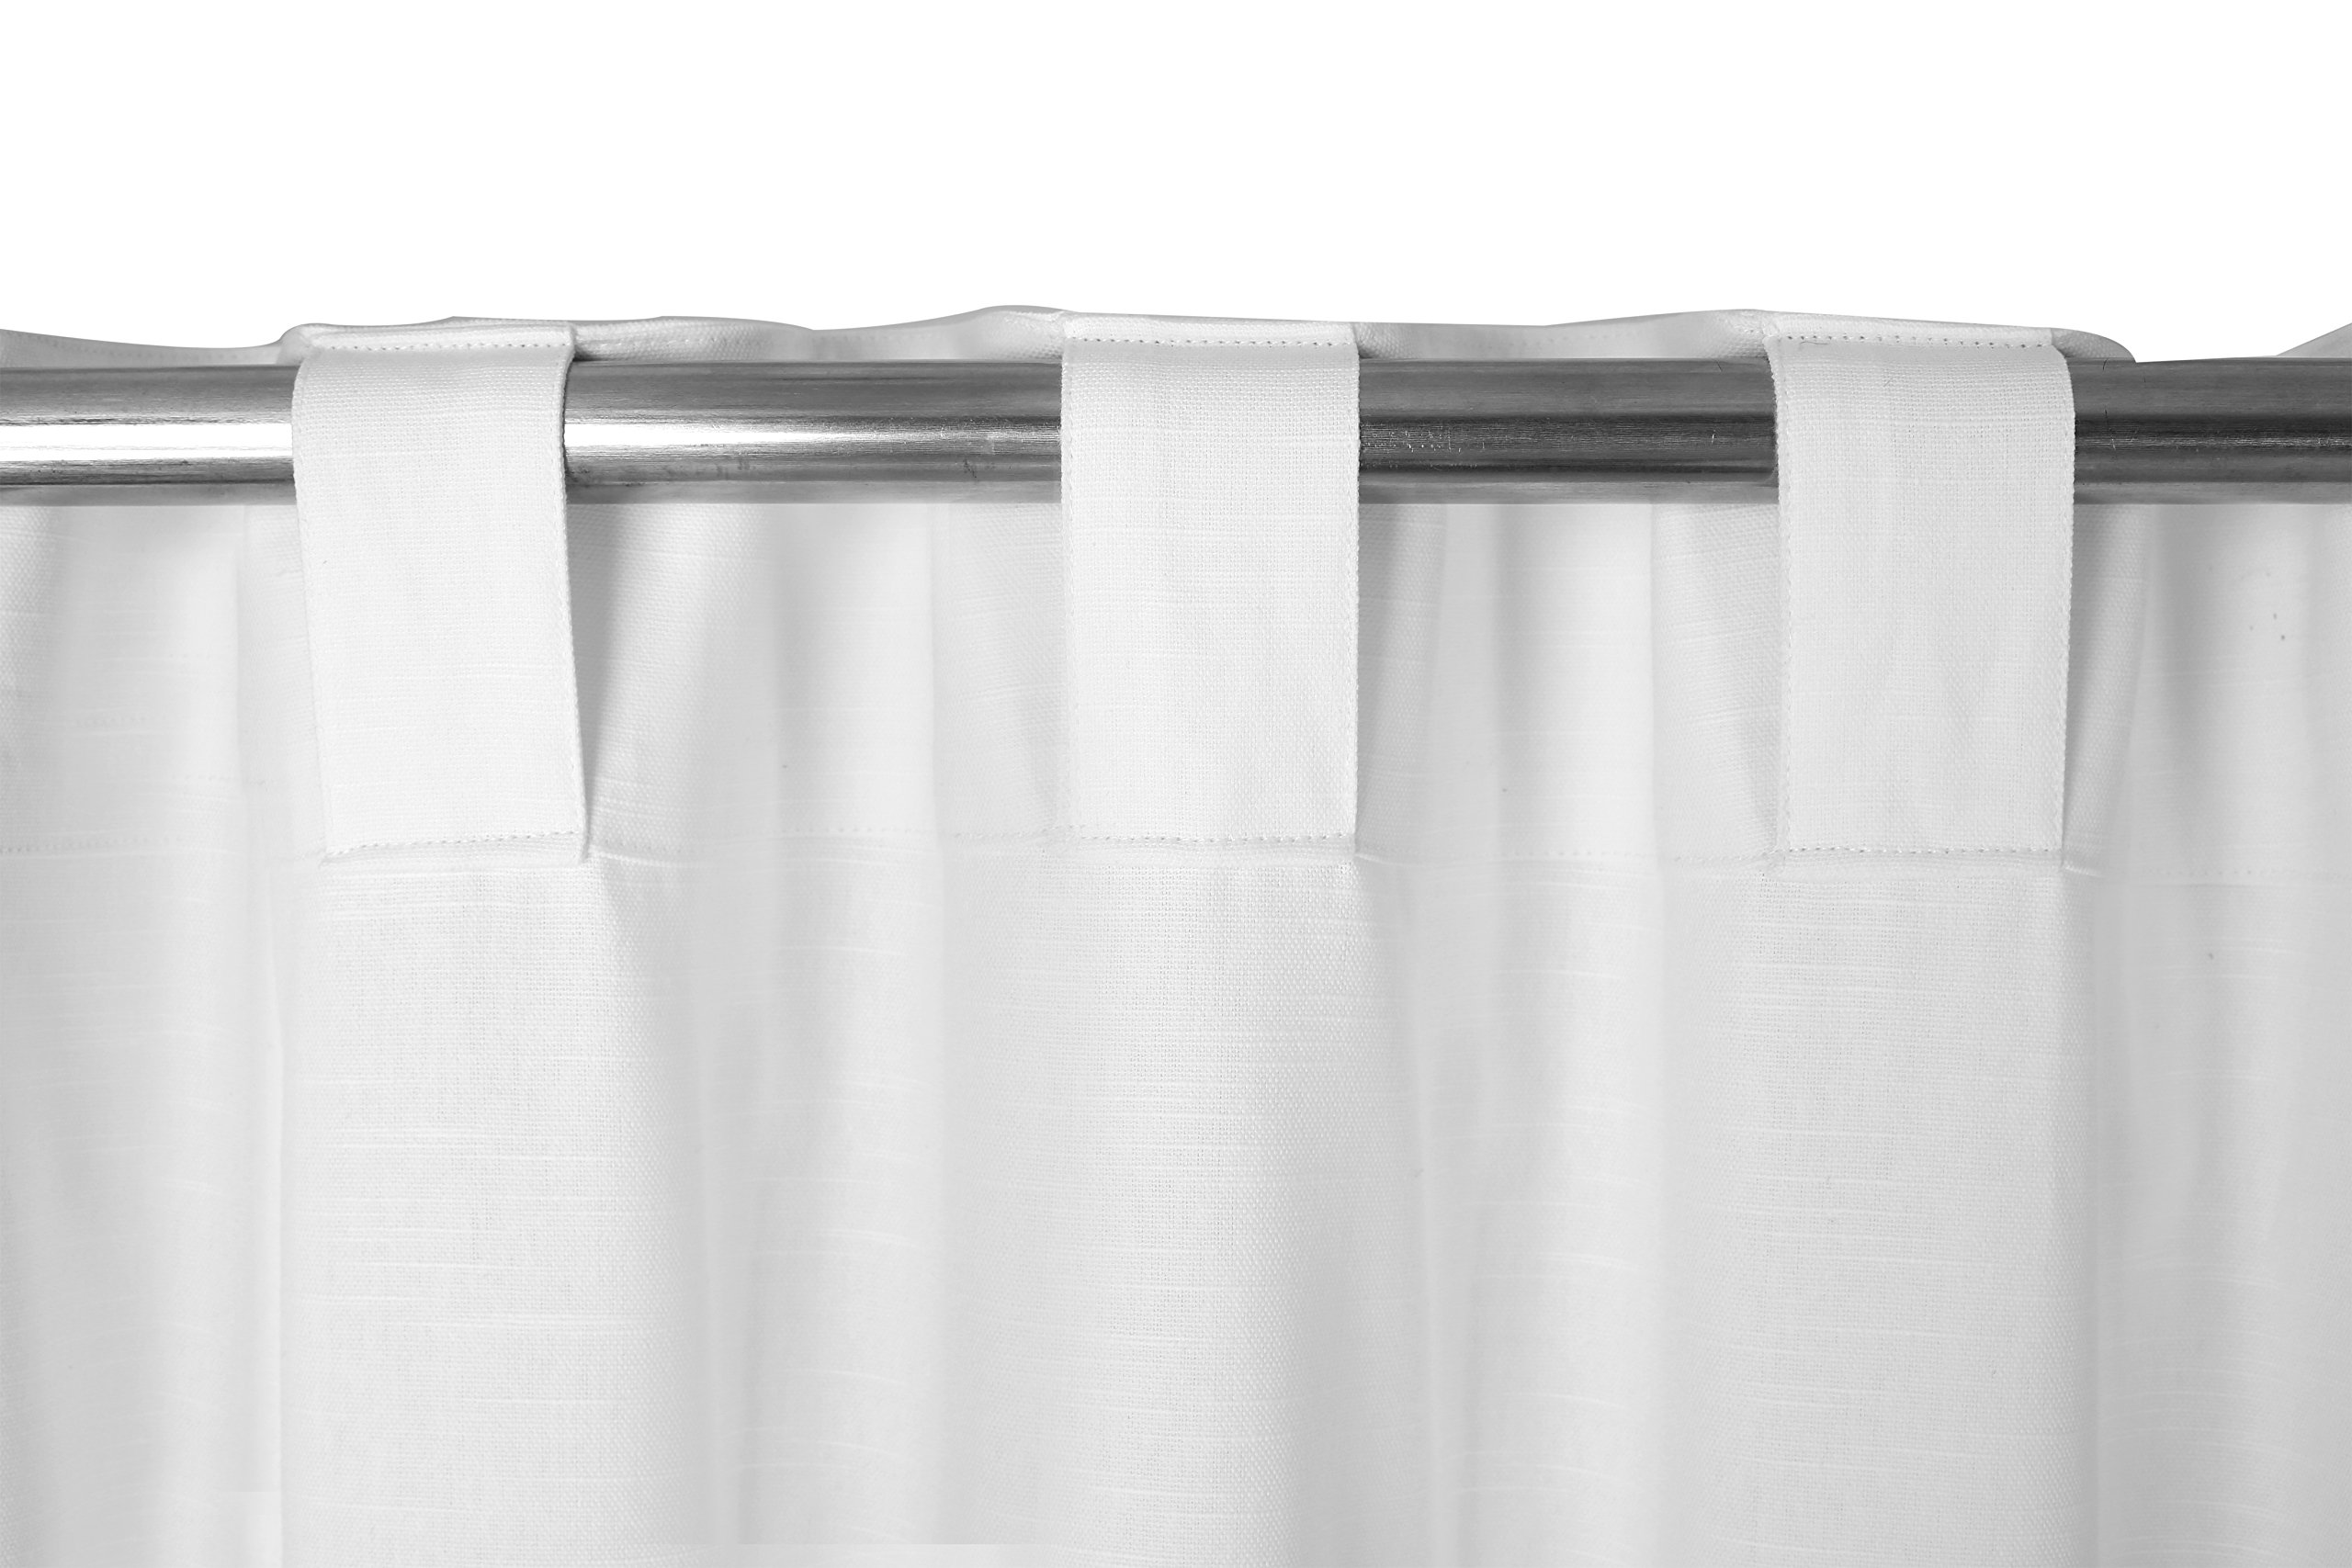 2Pack Cotton Duck Slub Back tab Curtain Panels 50x108 White. 100% Cotton slub Texture Fabric Curtain Panels Brings Classic Elegance in Everyday functionality.